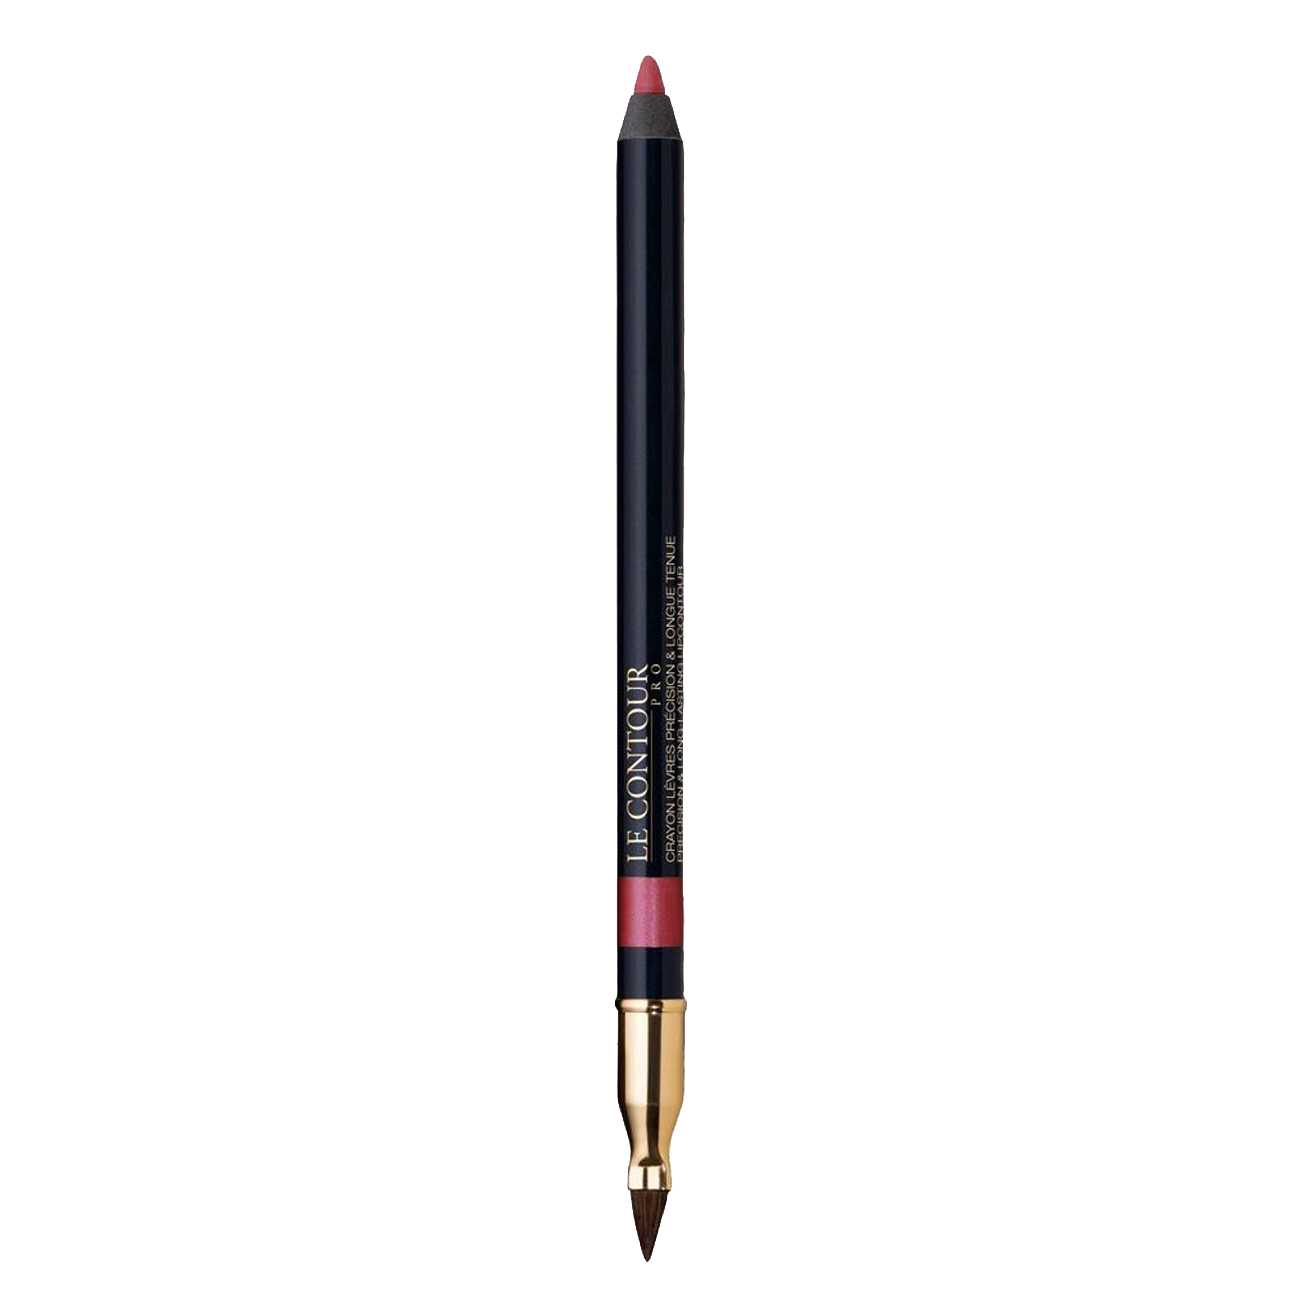 Contour Pro 1 G Rose The 315 Lancôme imagine 2021 bestvalue.eu